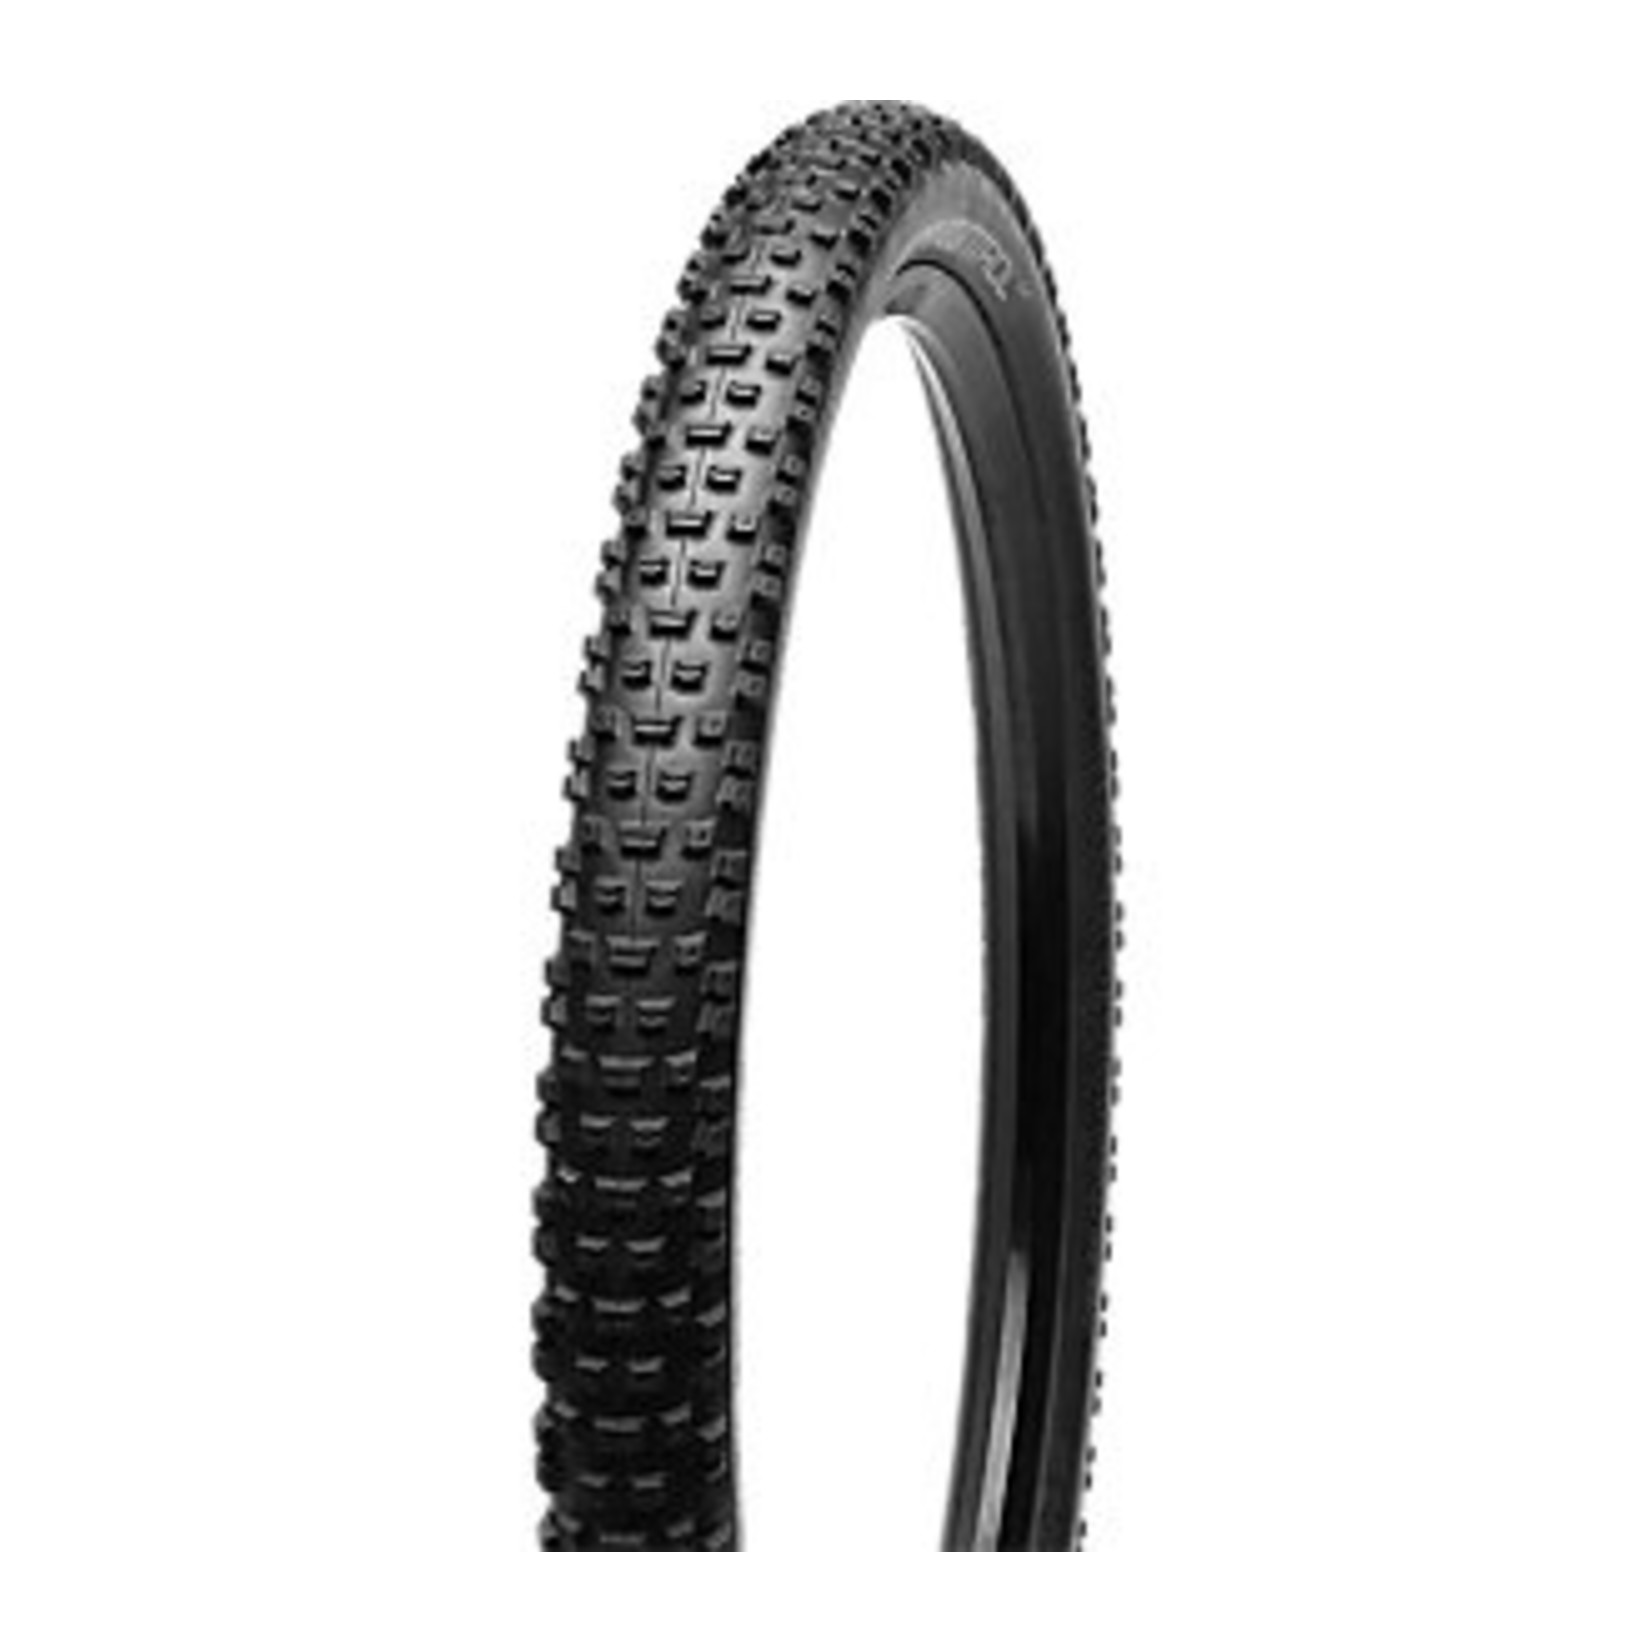 Specialized Specialized Ground Control 29x2.1 Control Tubeless Ready Folding Bead Tires